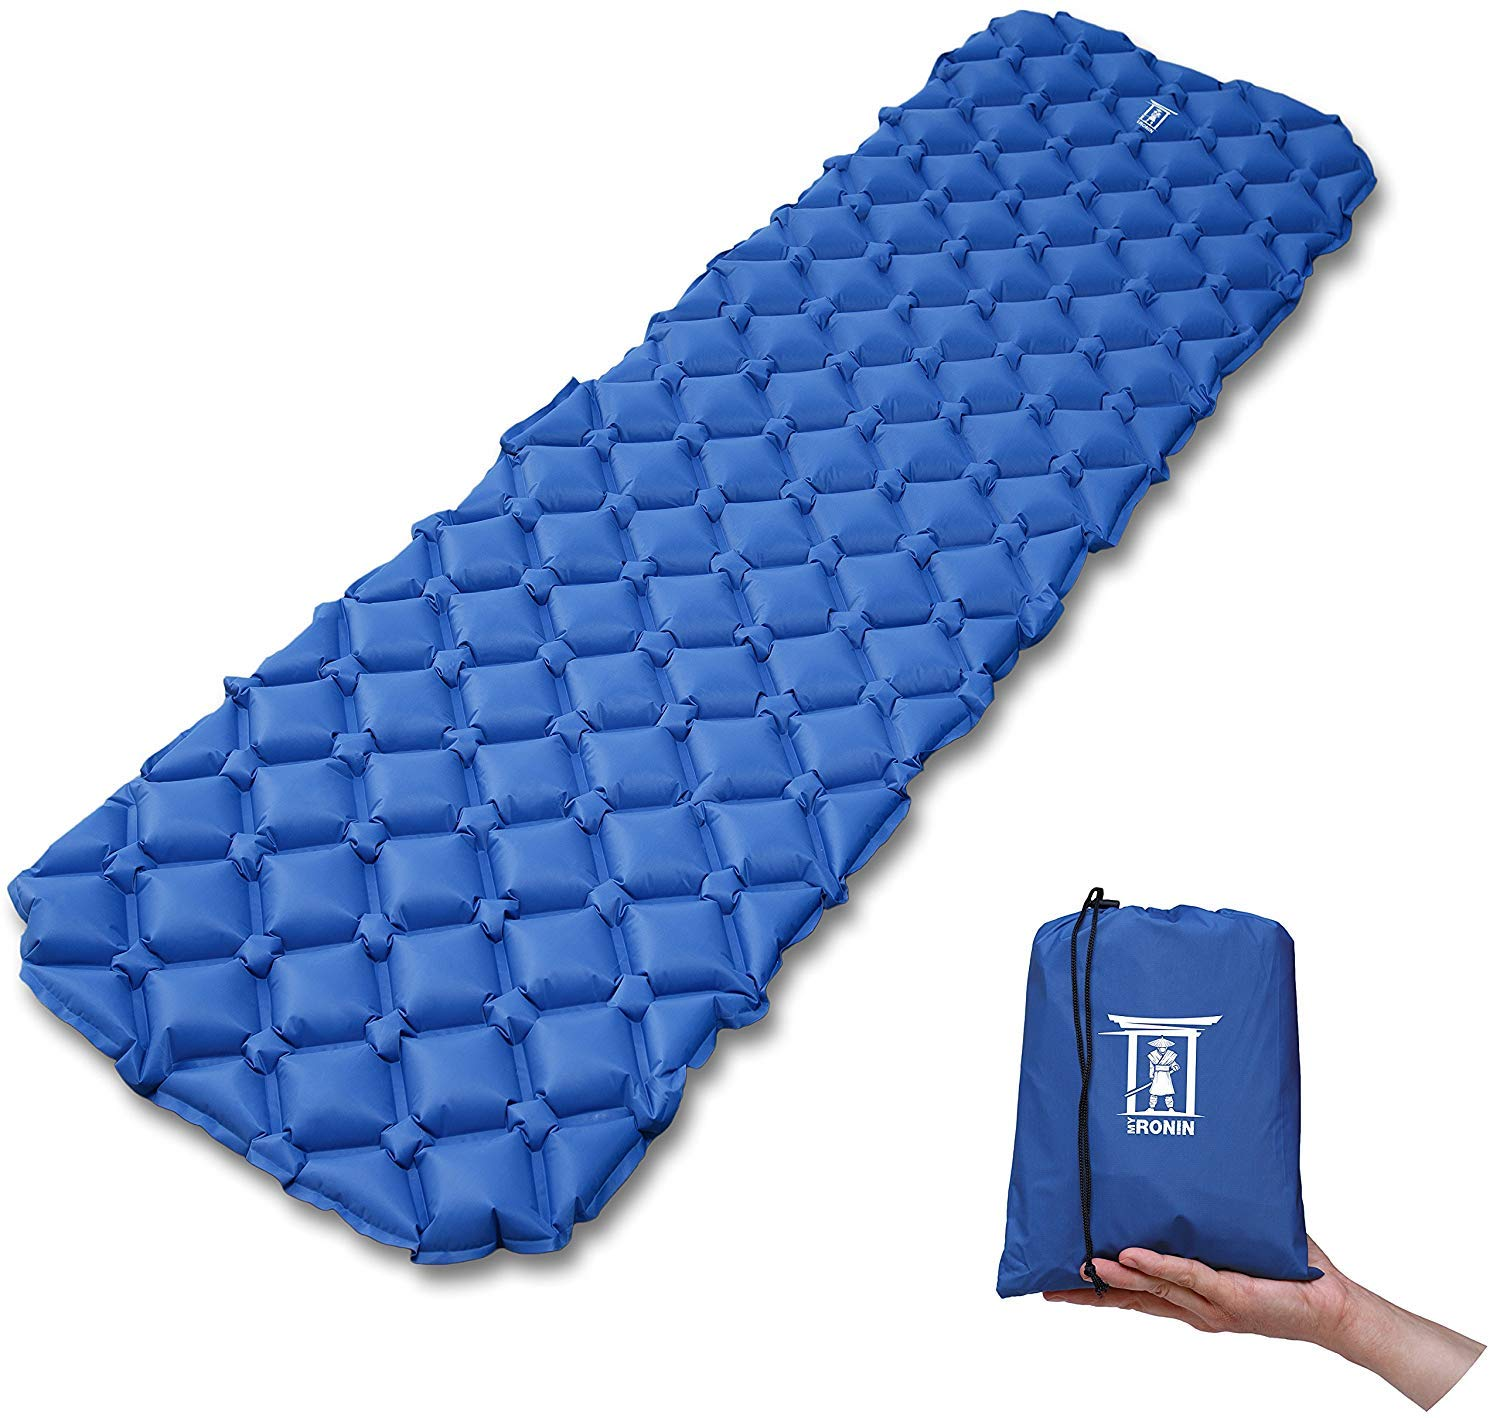 MyRonin Ultralight Outdoor Sleeping Pad, Inflatable, Moisture-Proof, with Bag, Compact for Camping, Backpacking, Hiking, Tents, Traveling, Air-Support Cells Design